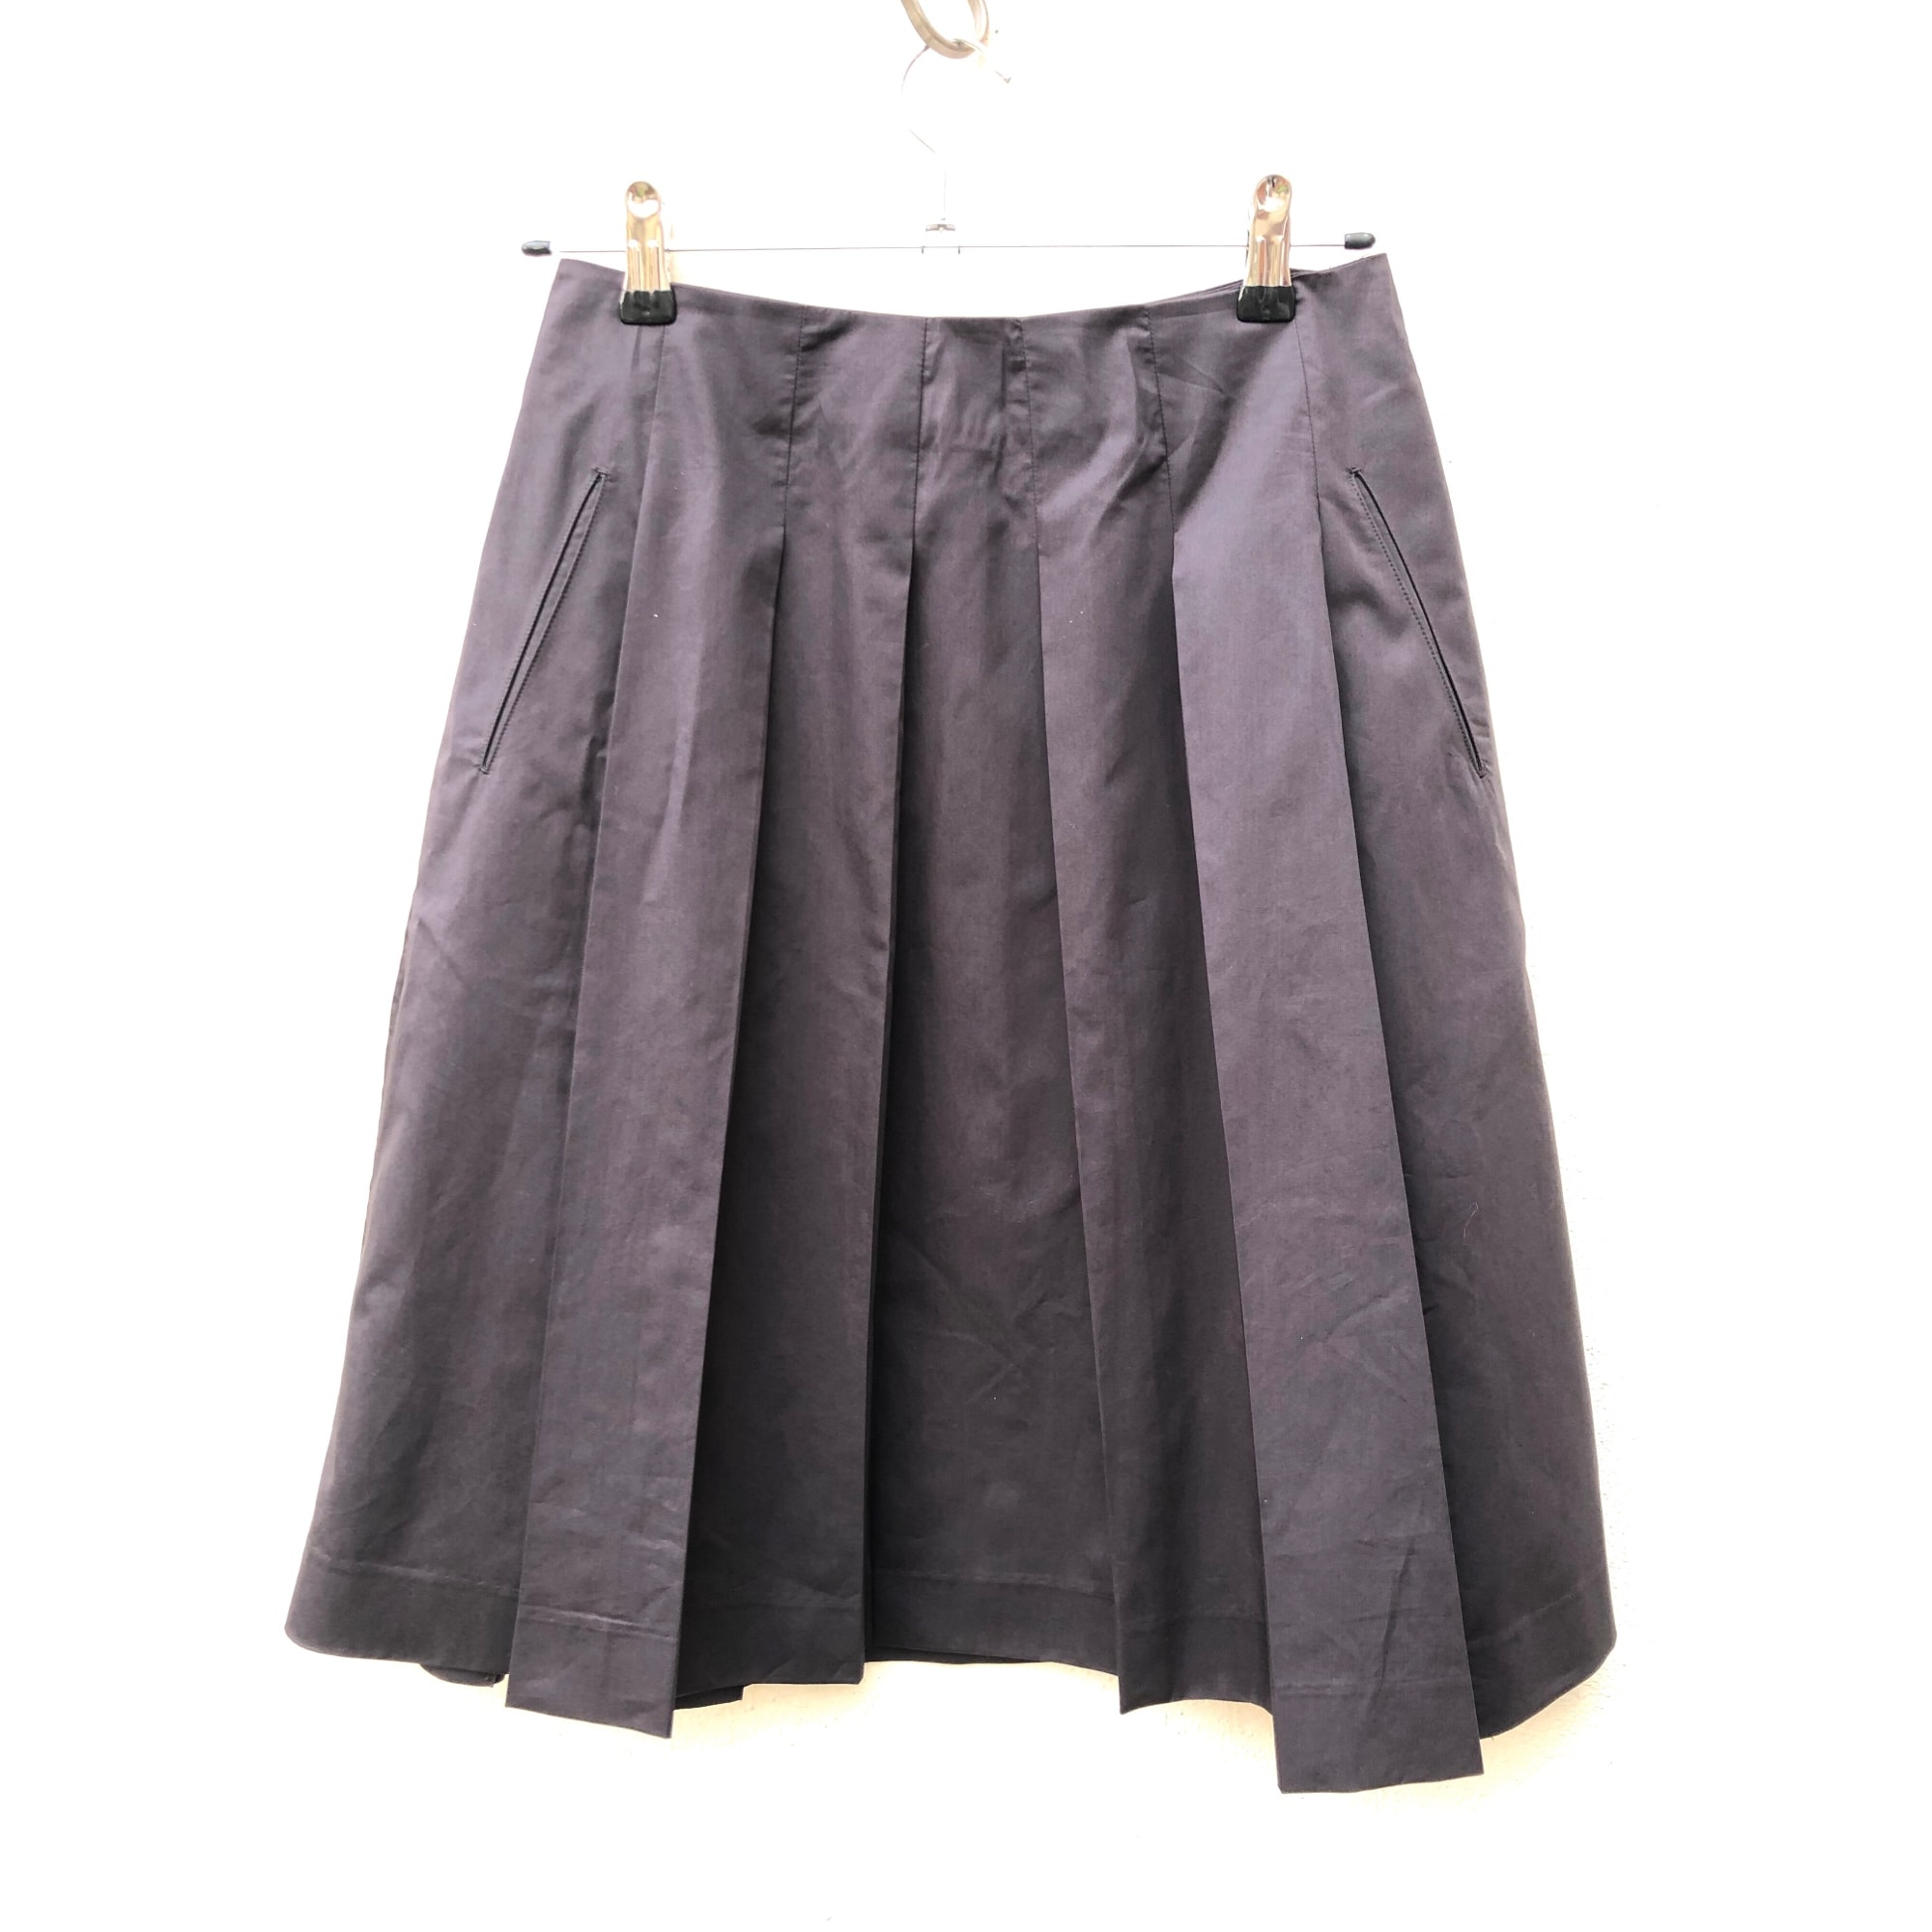 Jupe mi-longue BANANA REPUBLIC Gris, anthracite